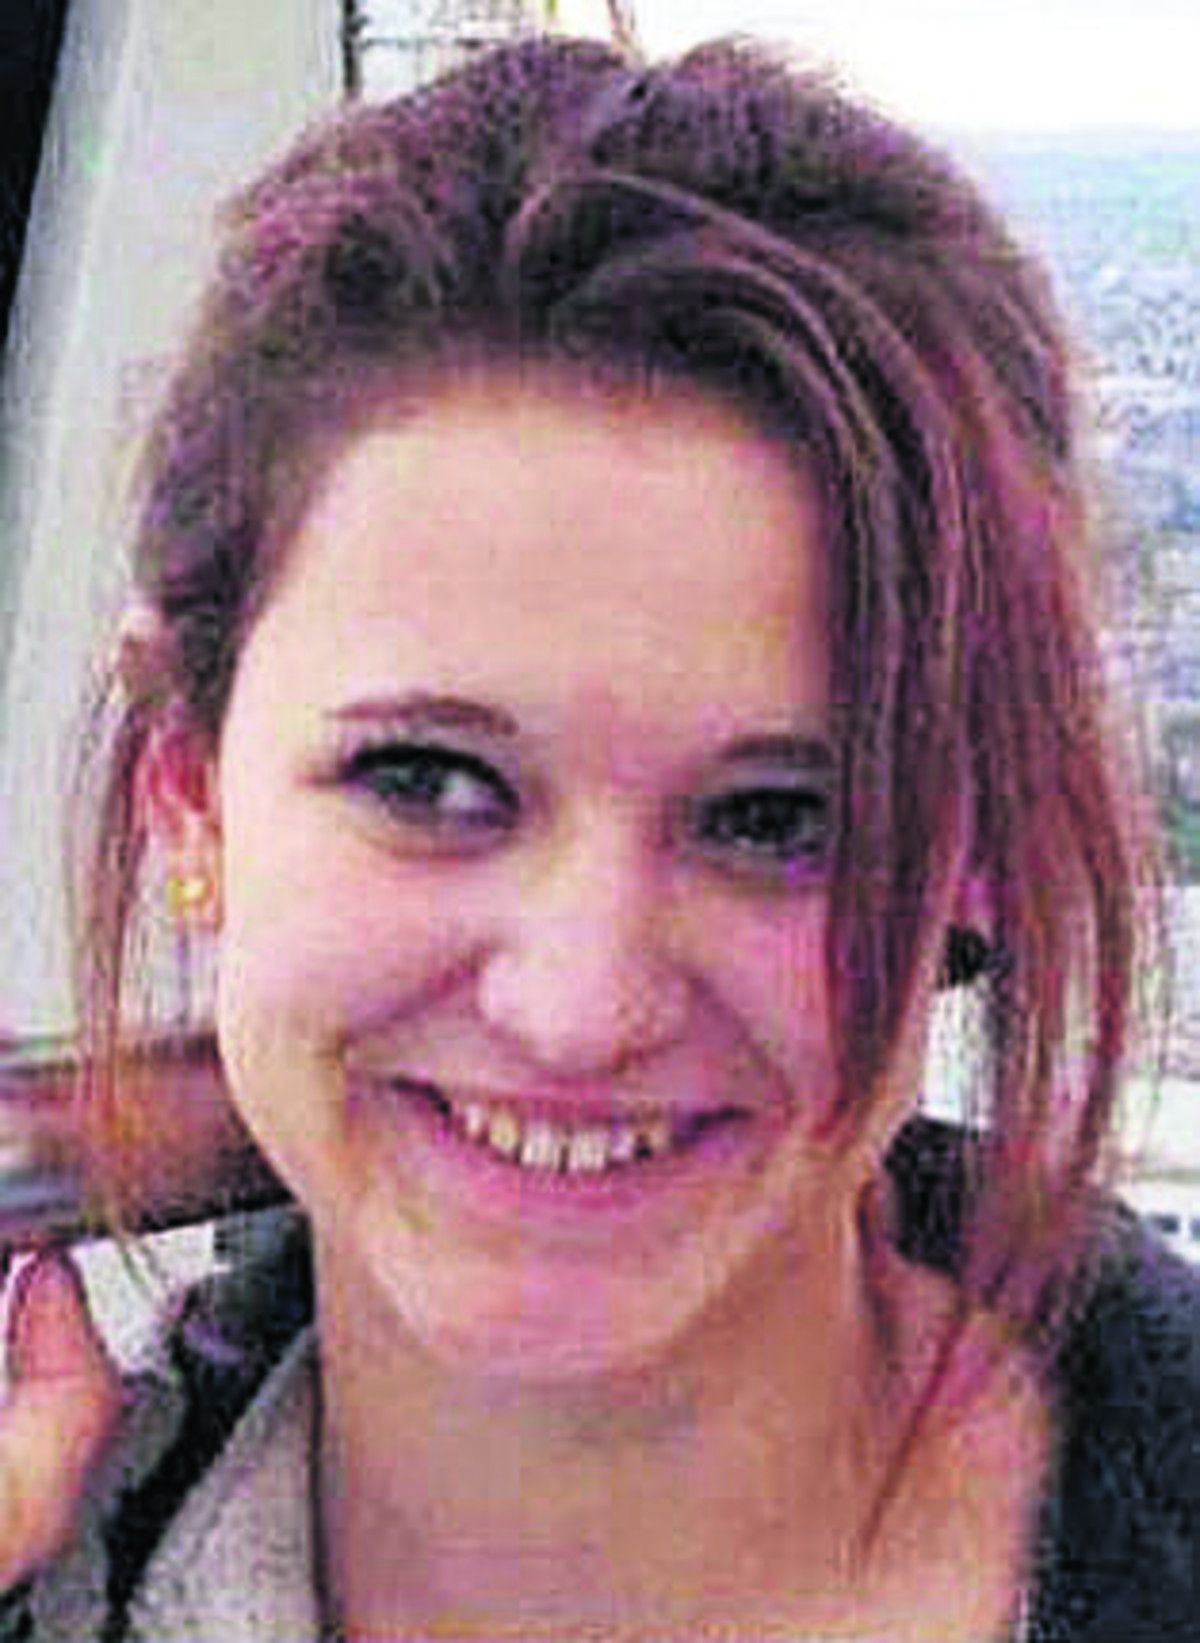 Missing Oxford teenager found safe